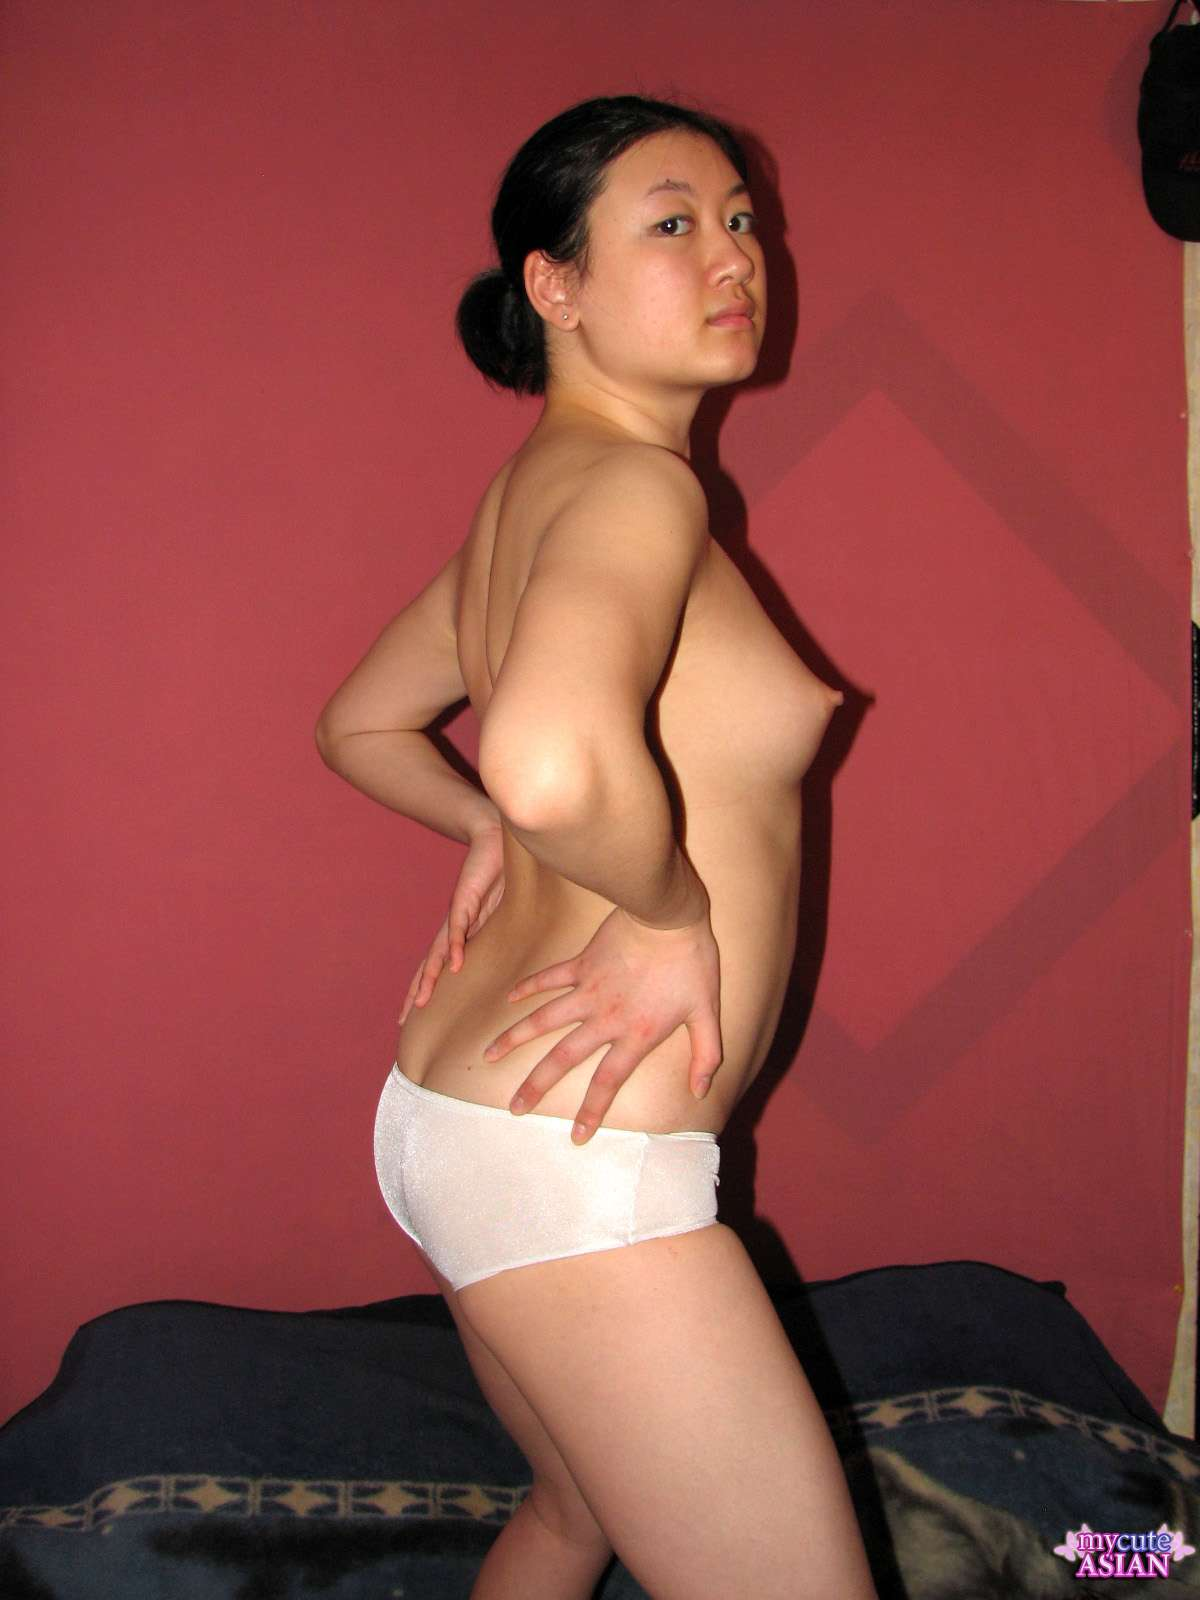 amateur chinese coed shows her tight pussy - movie shark